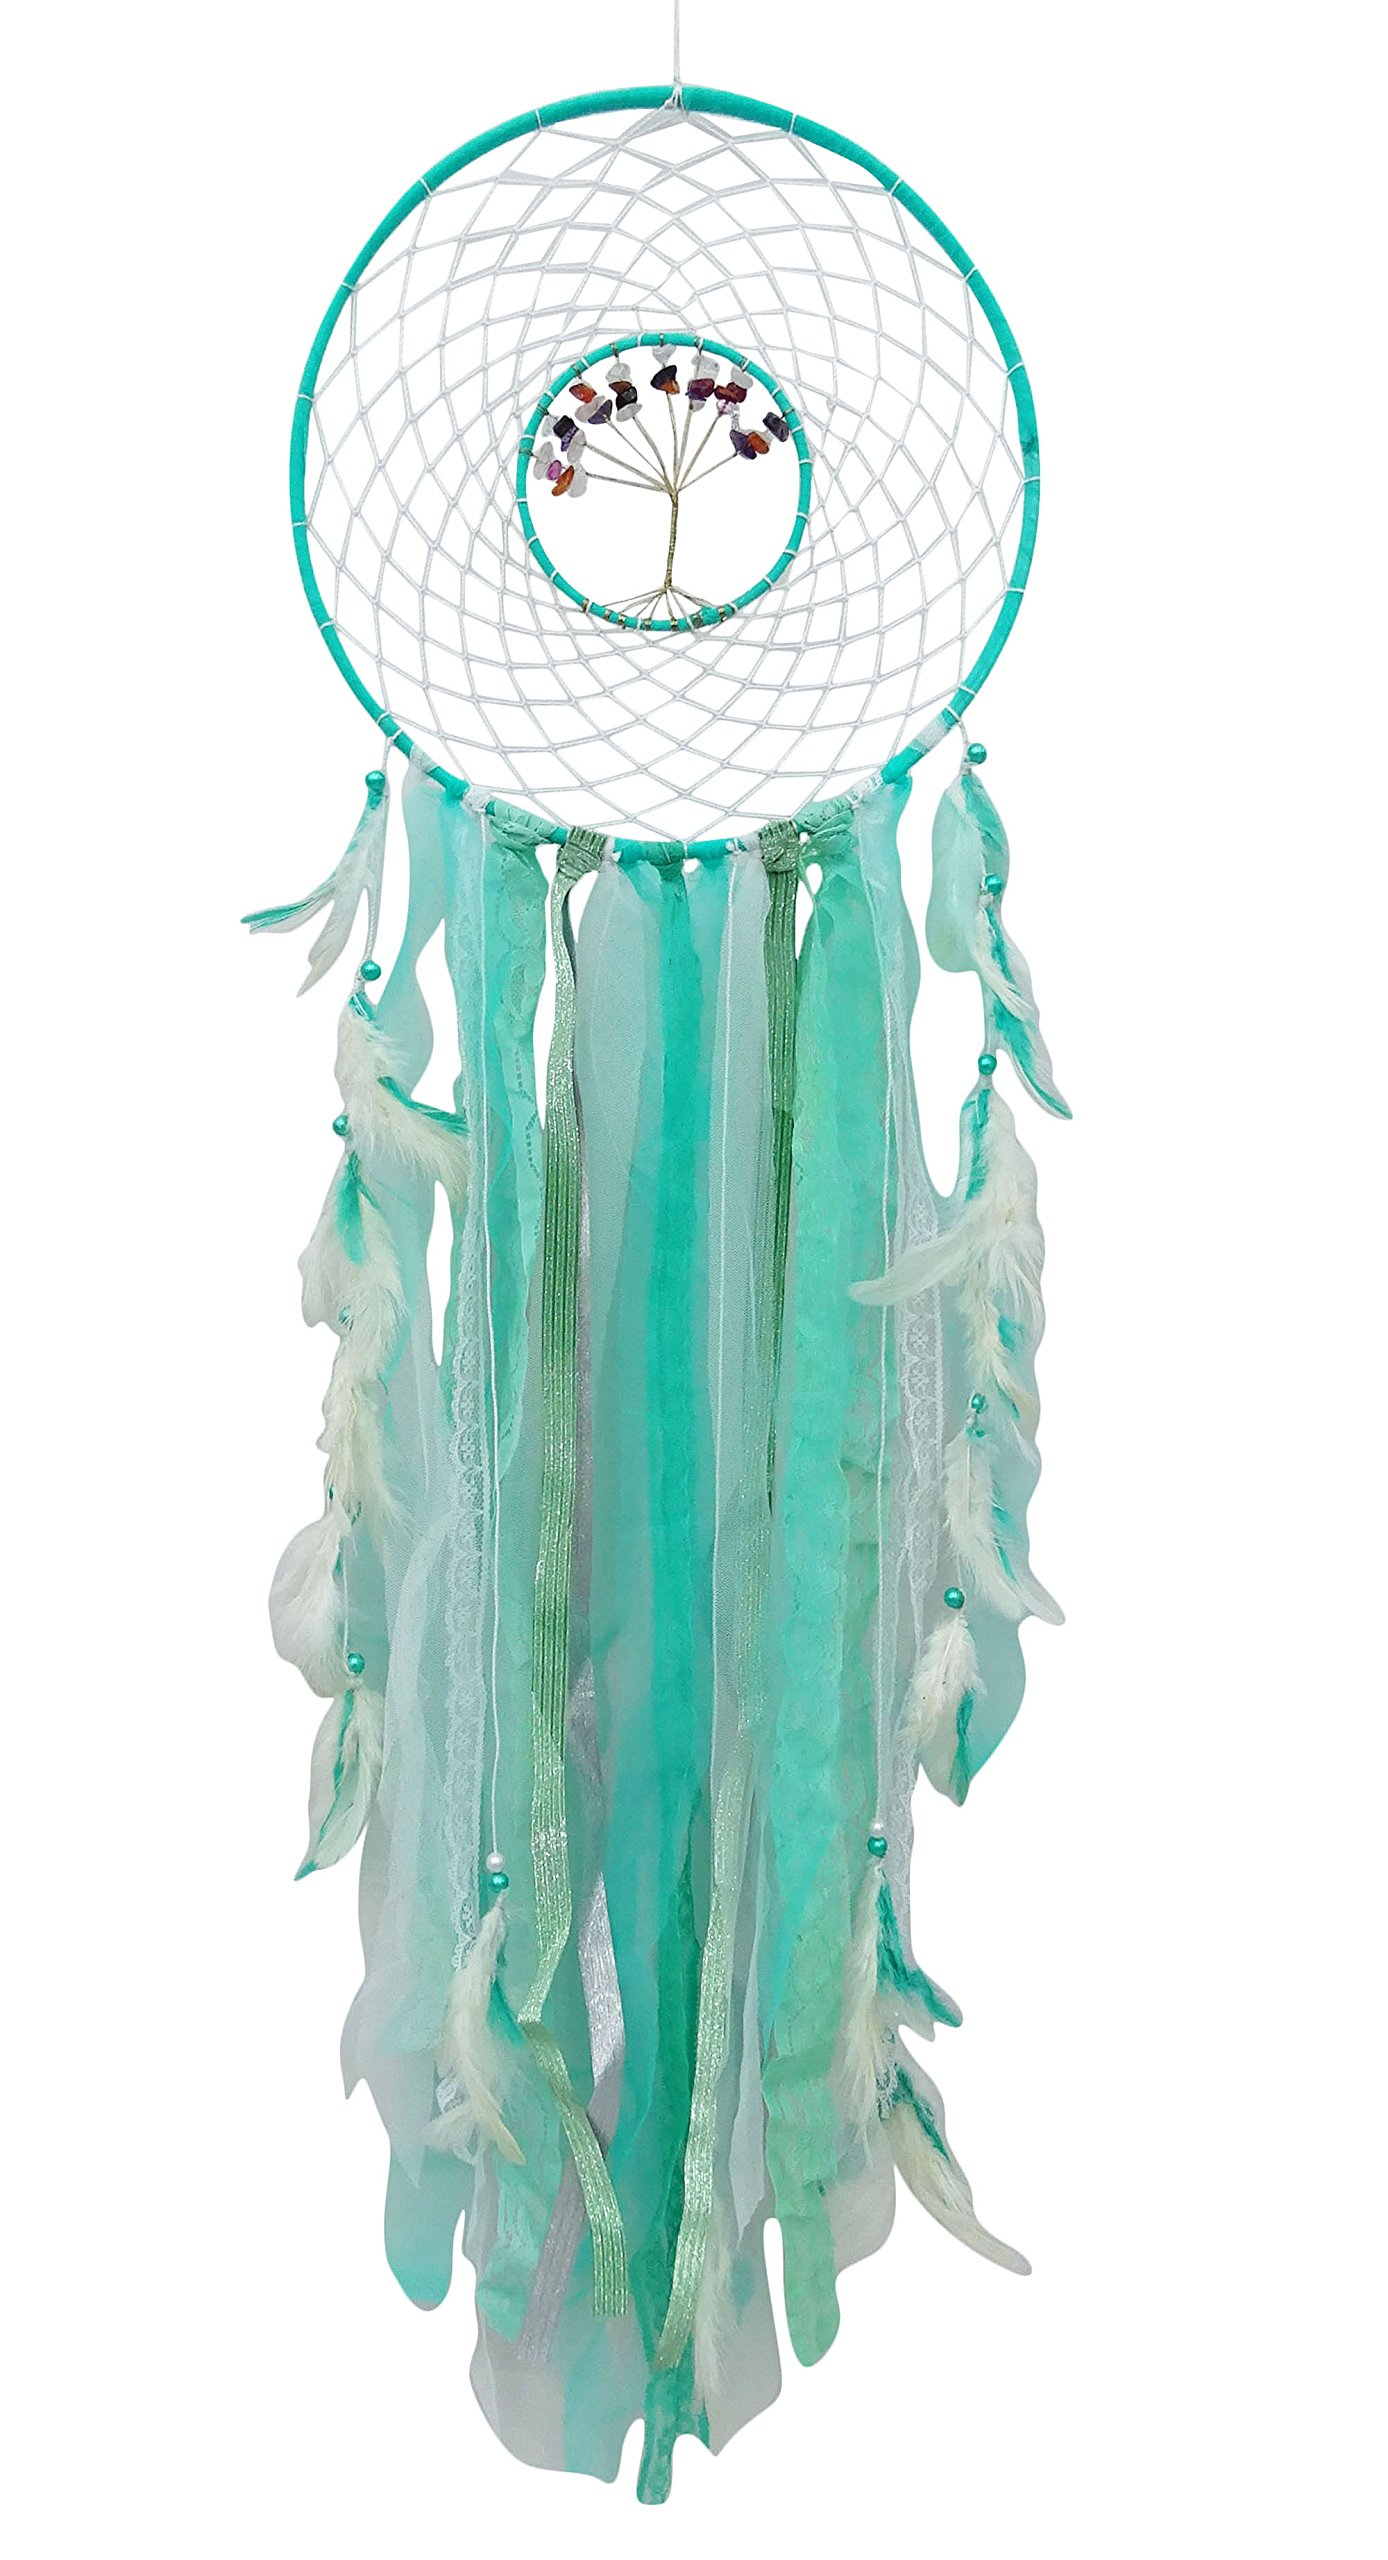 SuSvapnaah Net Ribbons & Faux Feather Dreamcatcher Large Boho Nursery Decor Dream Catcher Wall Hanging